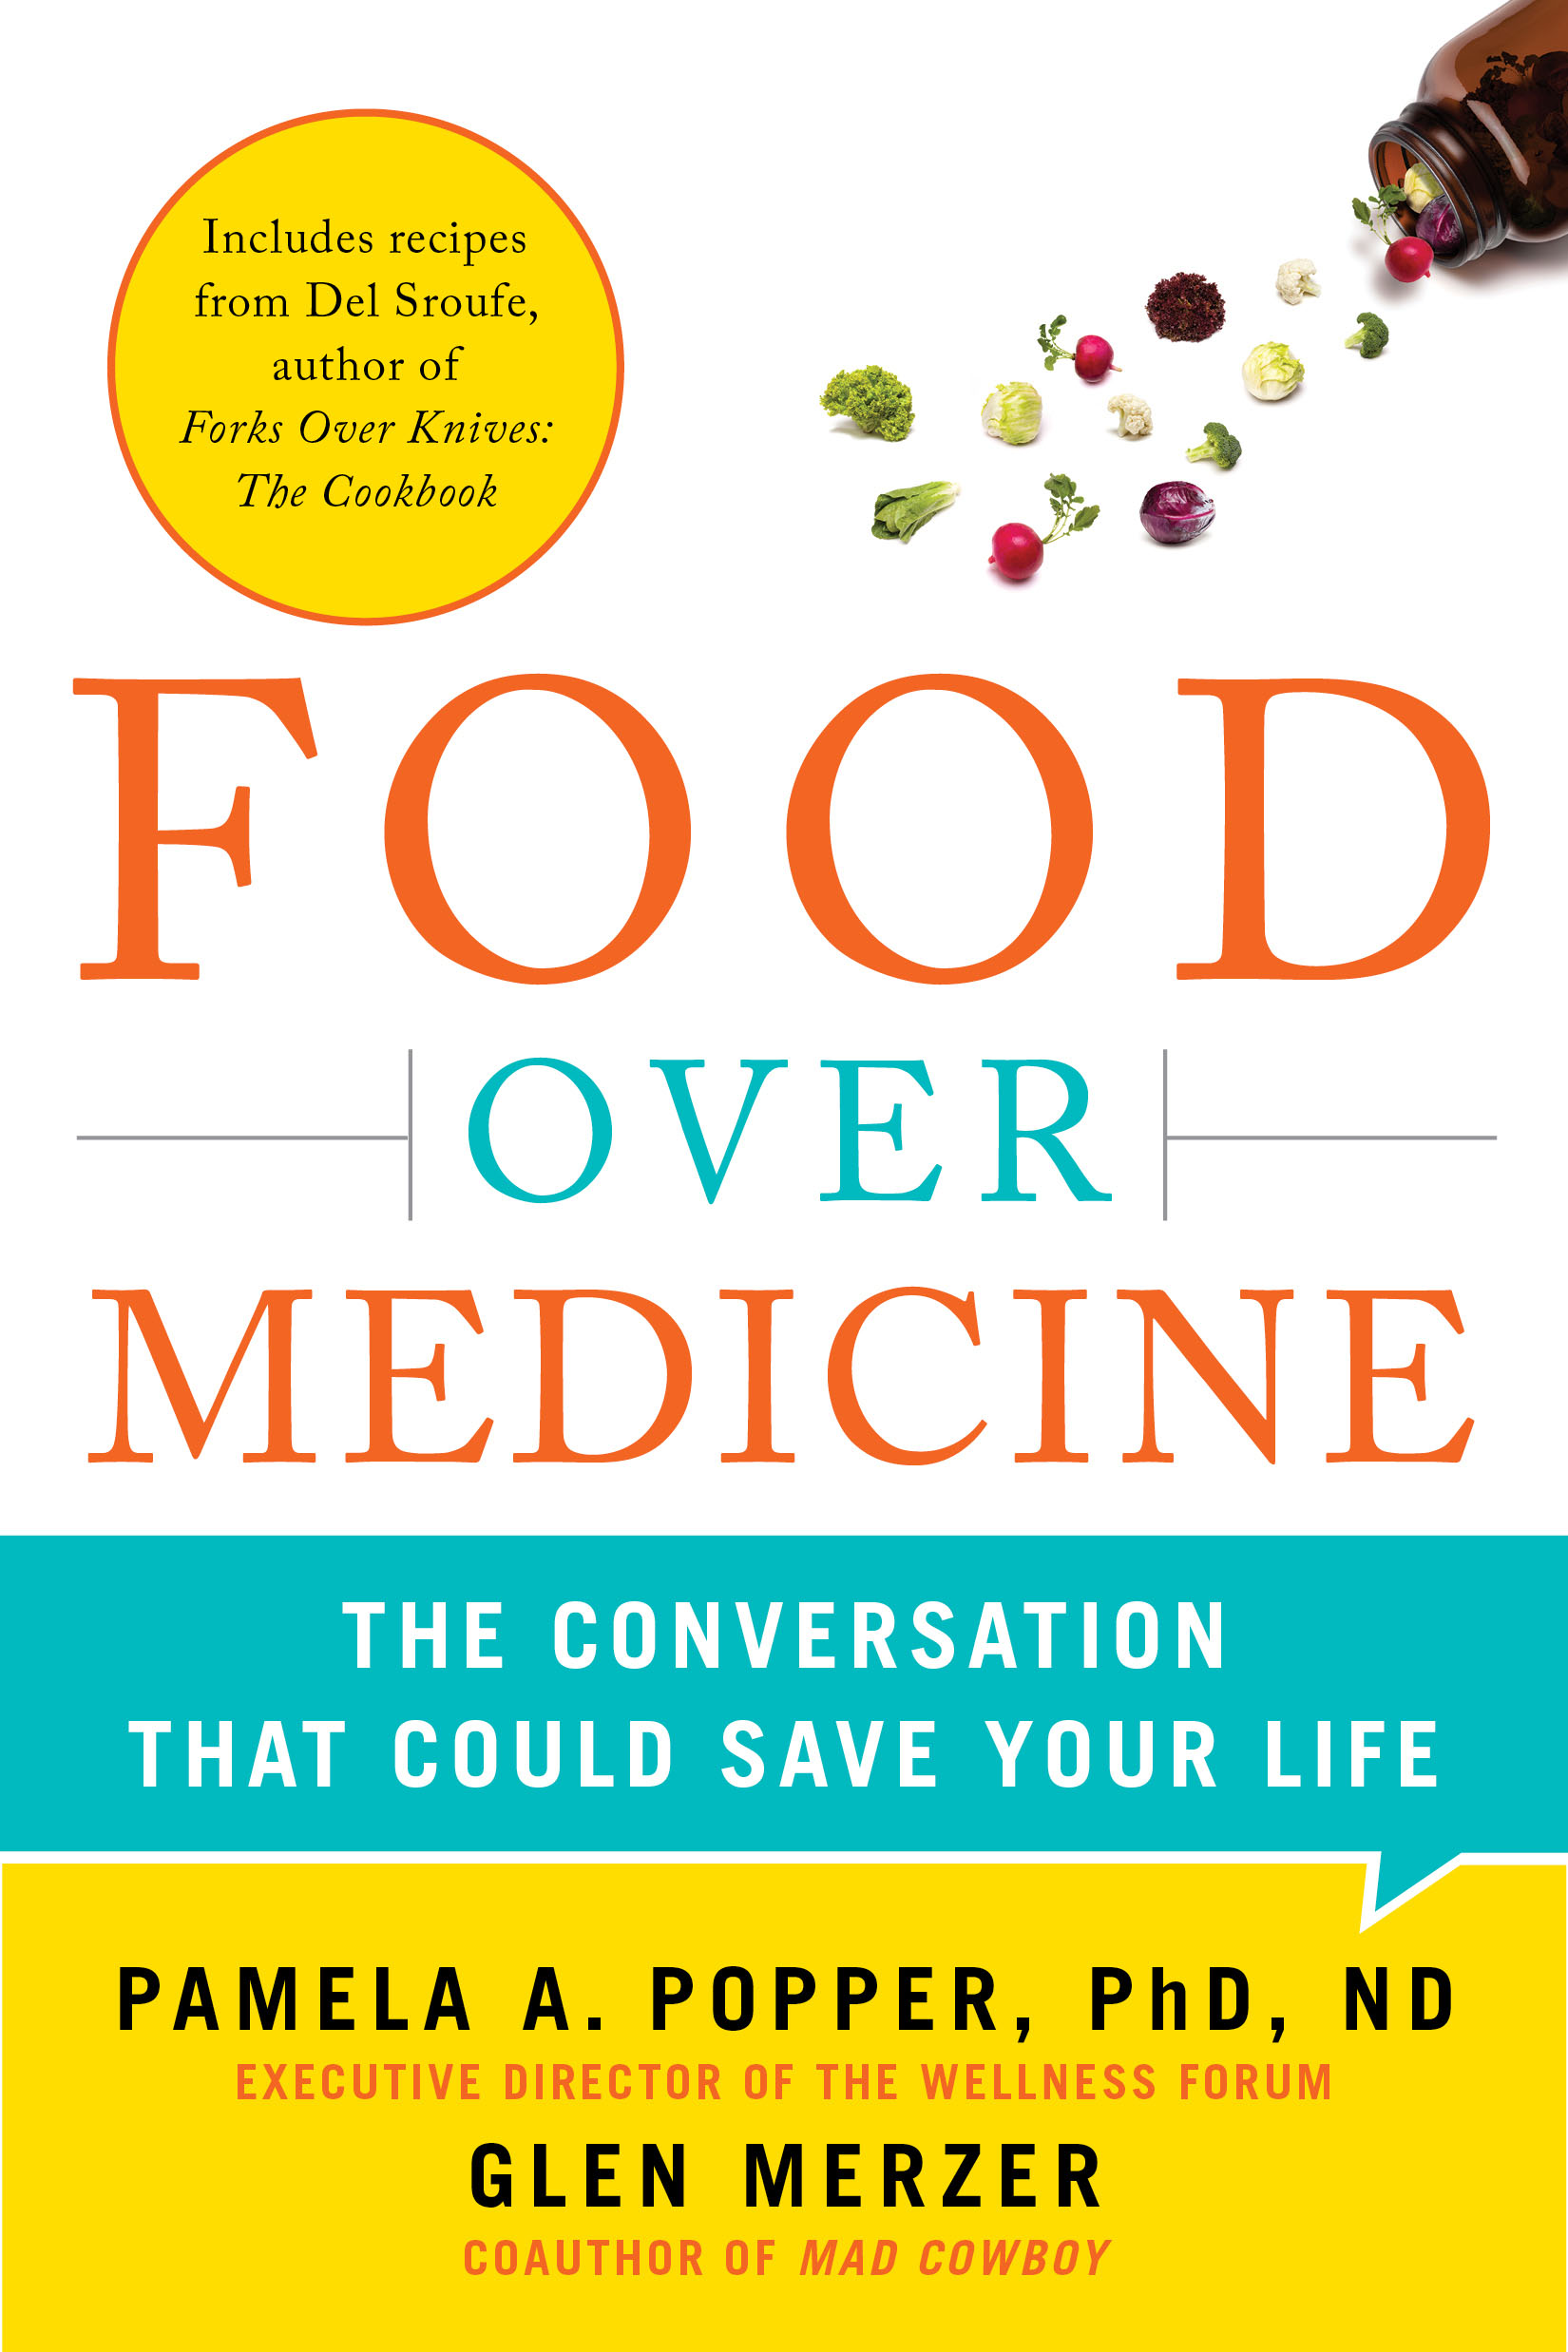 Food Over Medicine: The Conversation That Could Save Your